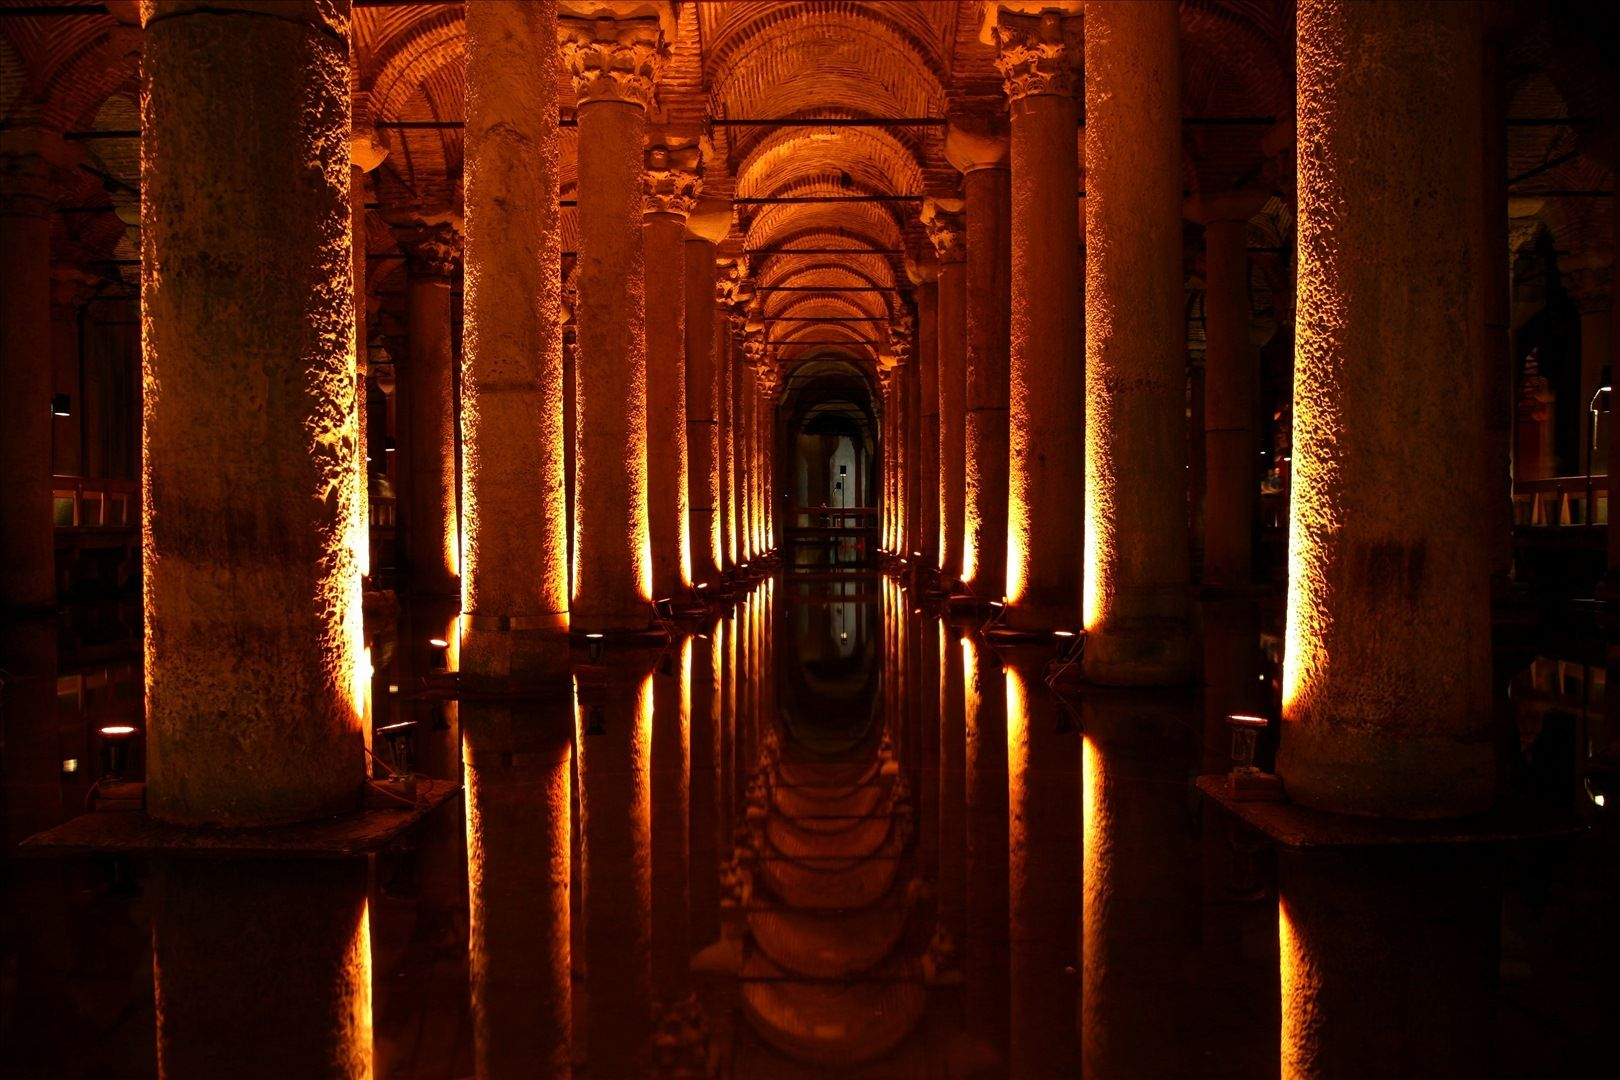 The Basilica Cistern, right next door to the Hagia Sofia and the Blue Mosque. They play semi-creepy atmosphere music; it's a really good place to mull over a plotline!